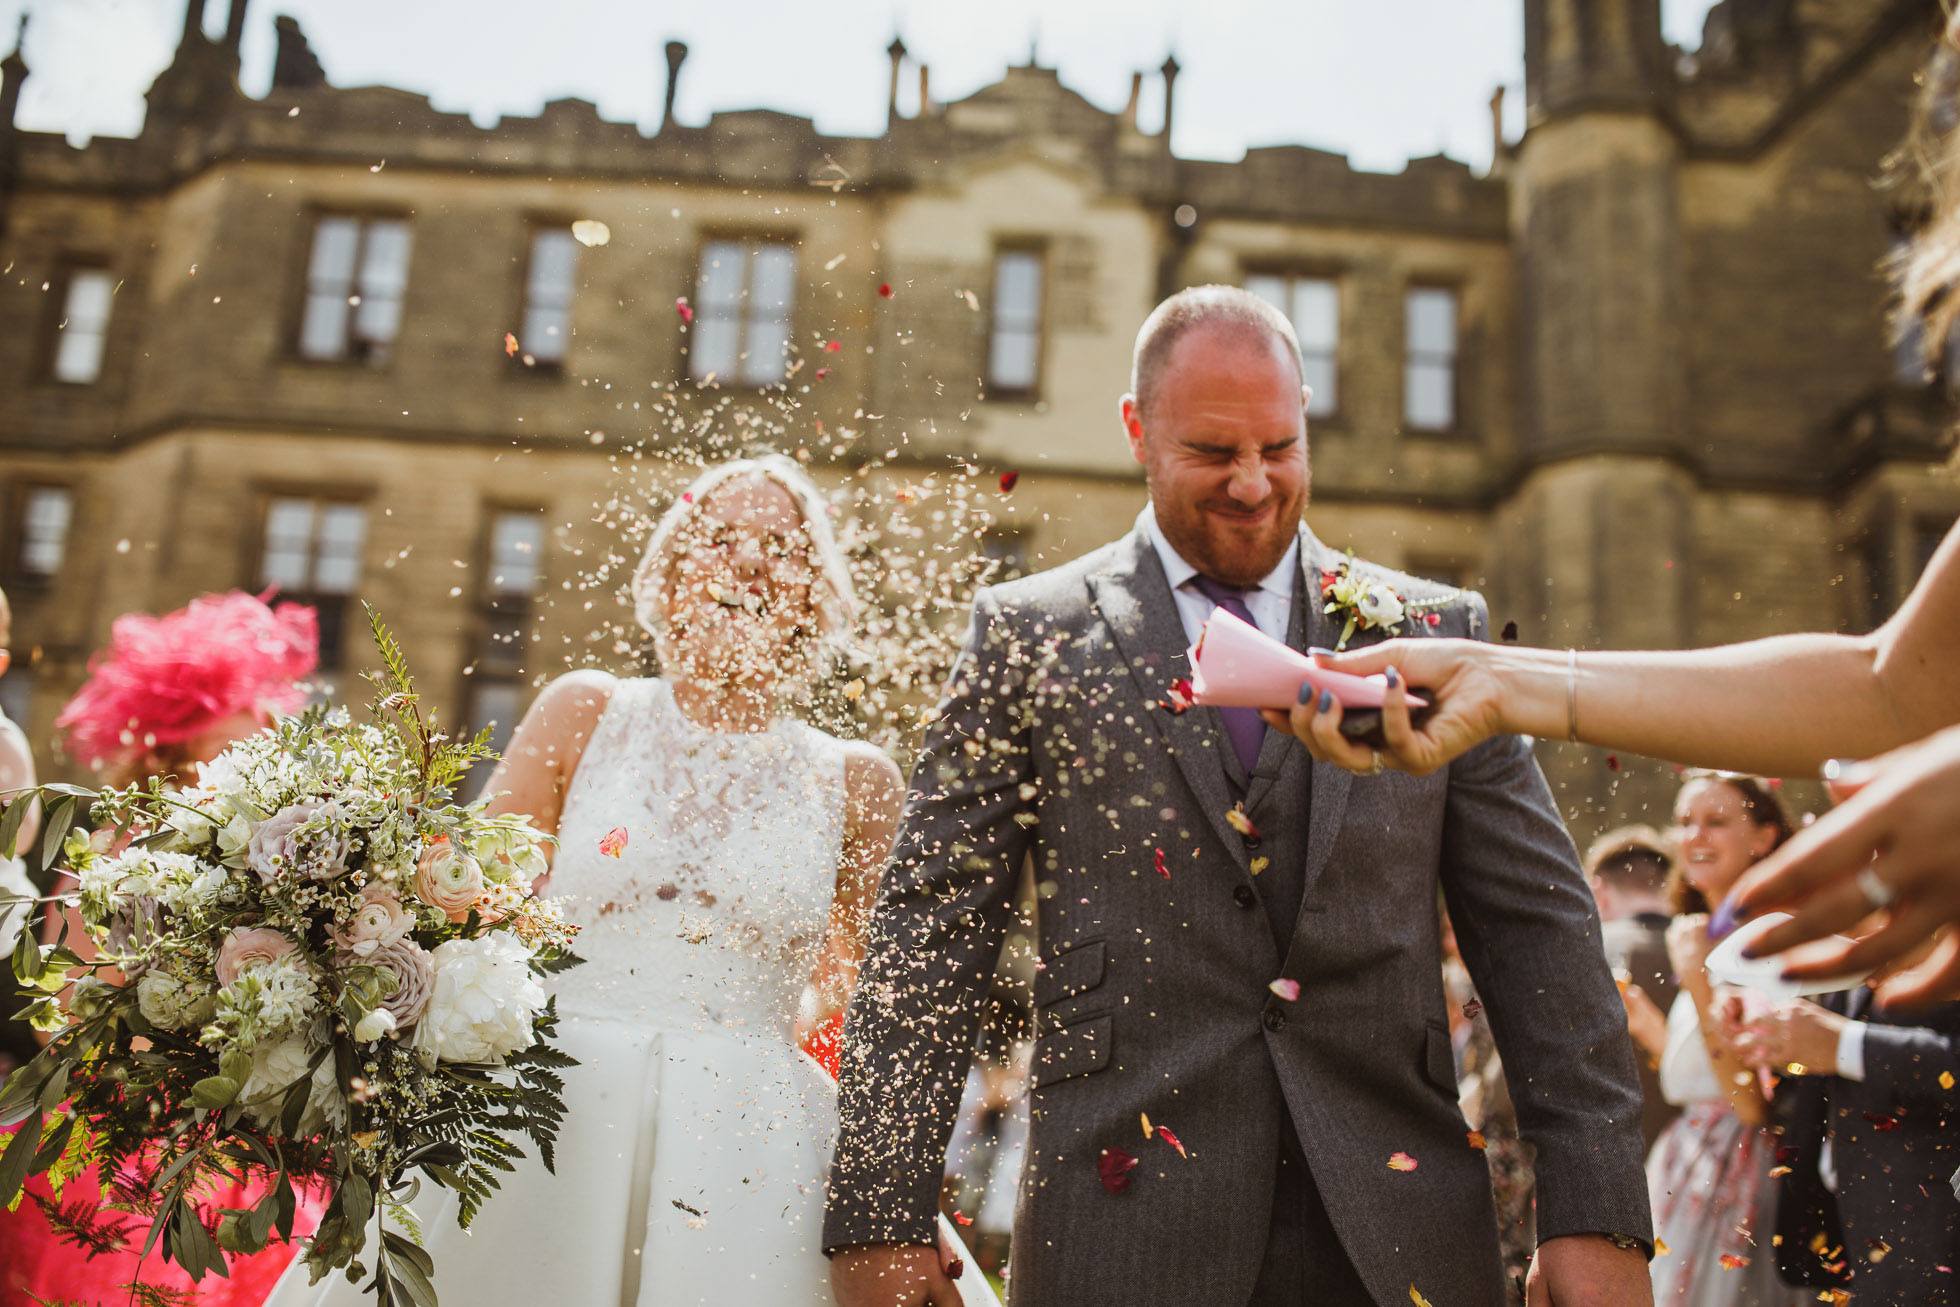 allerton_castle_wedding_photographer-56.jpg